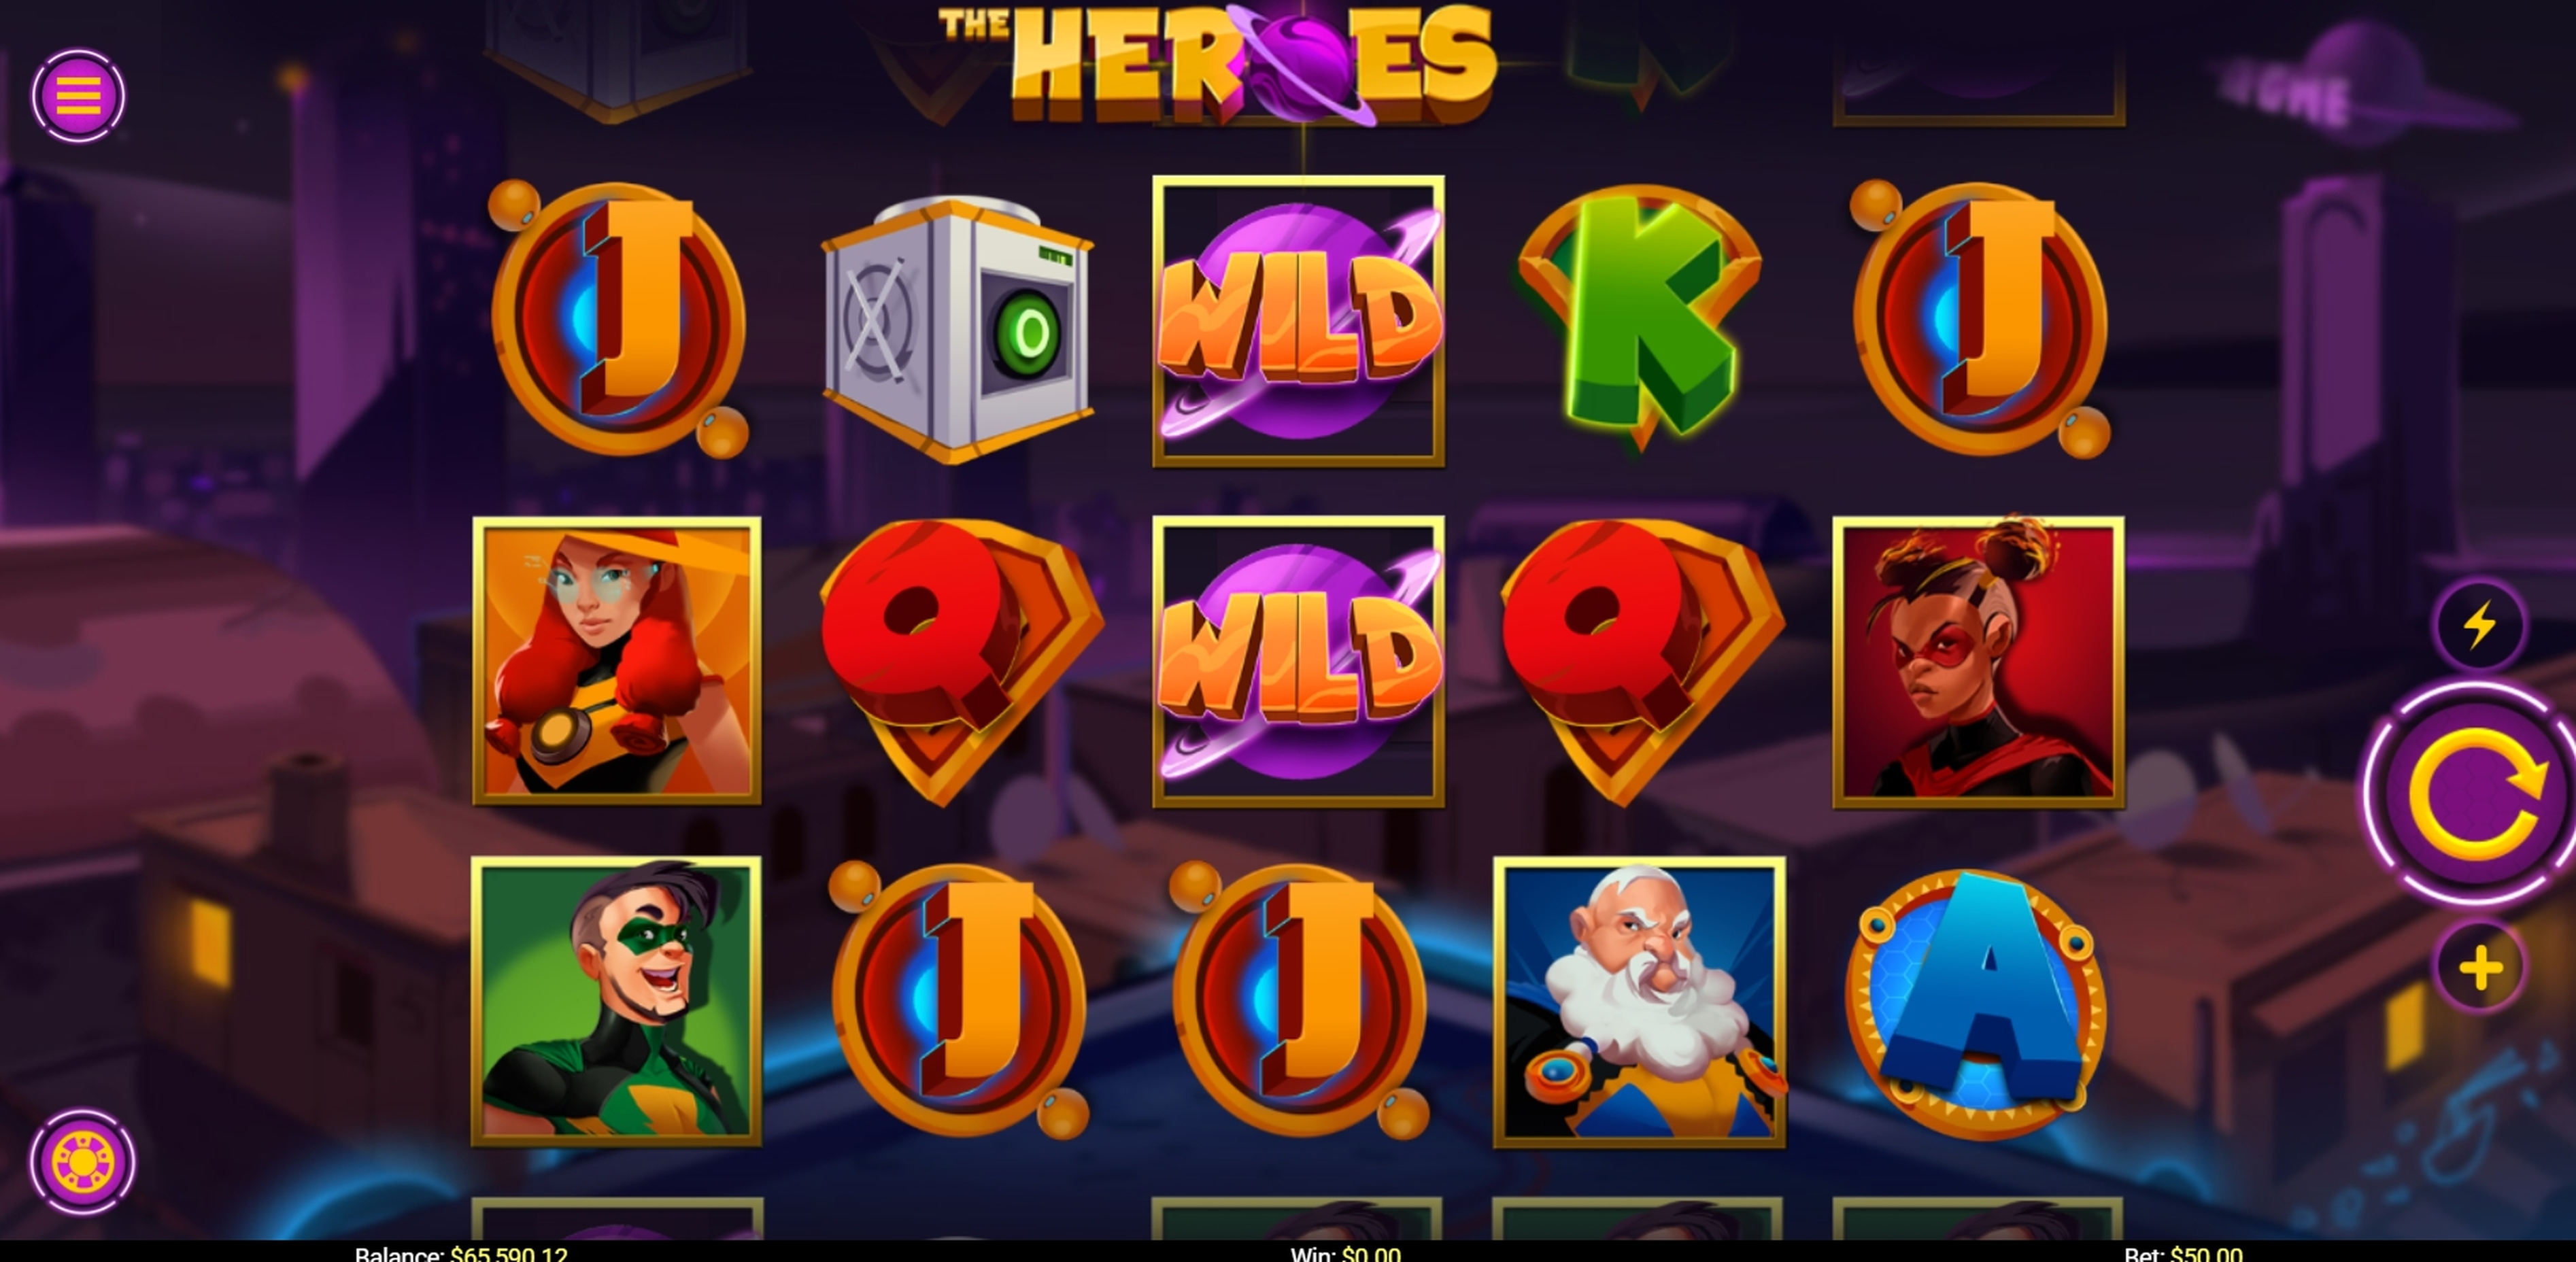 Reels in The Heroes Slot Game by Mobilots